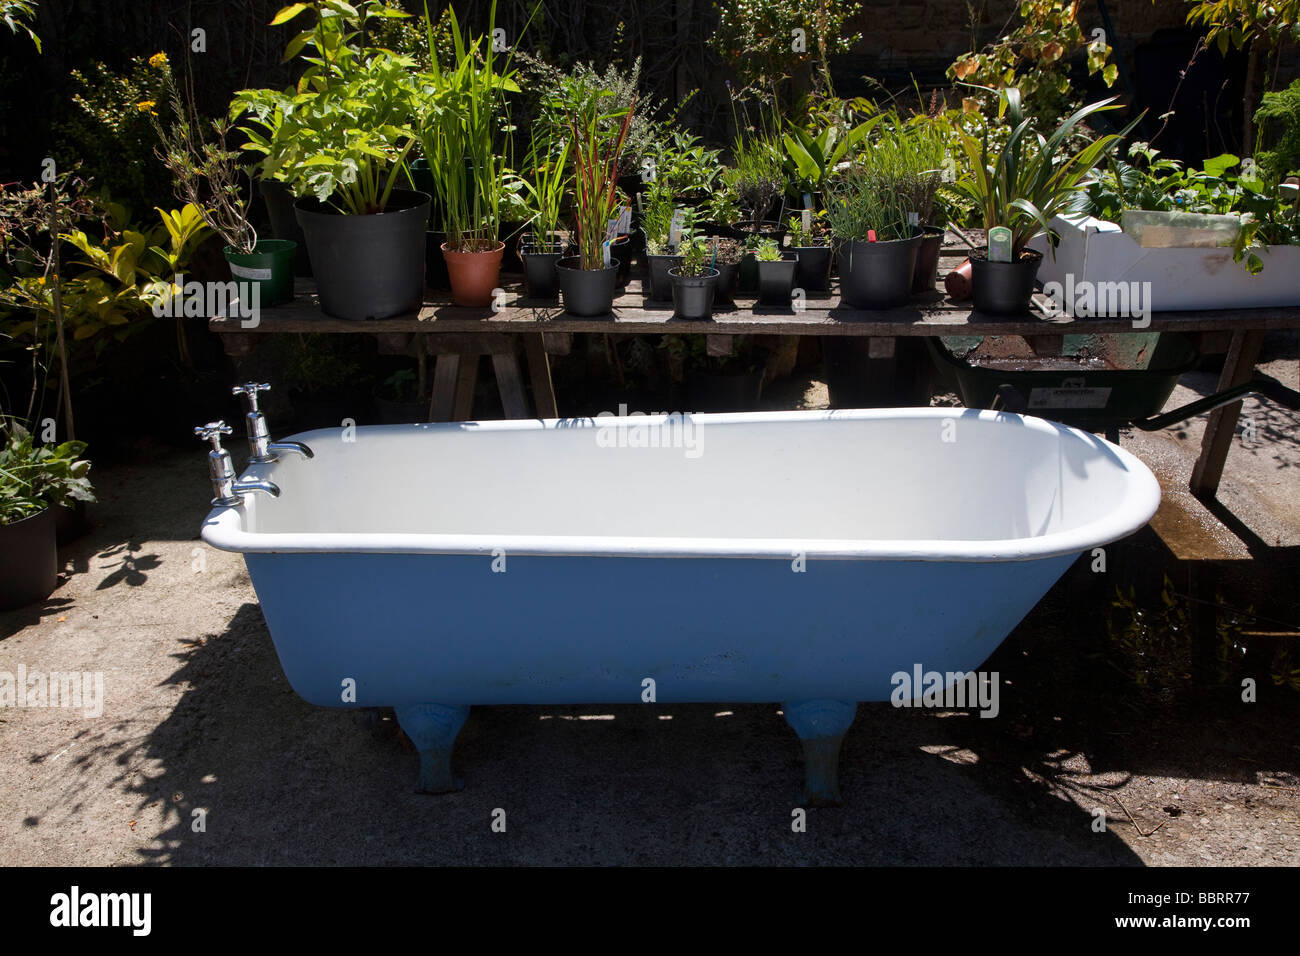 White Cast Iron Bath Tub Sitting In The Middle Of A Garden Centre Stock Photo Alamy